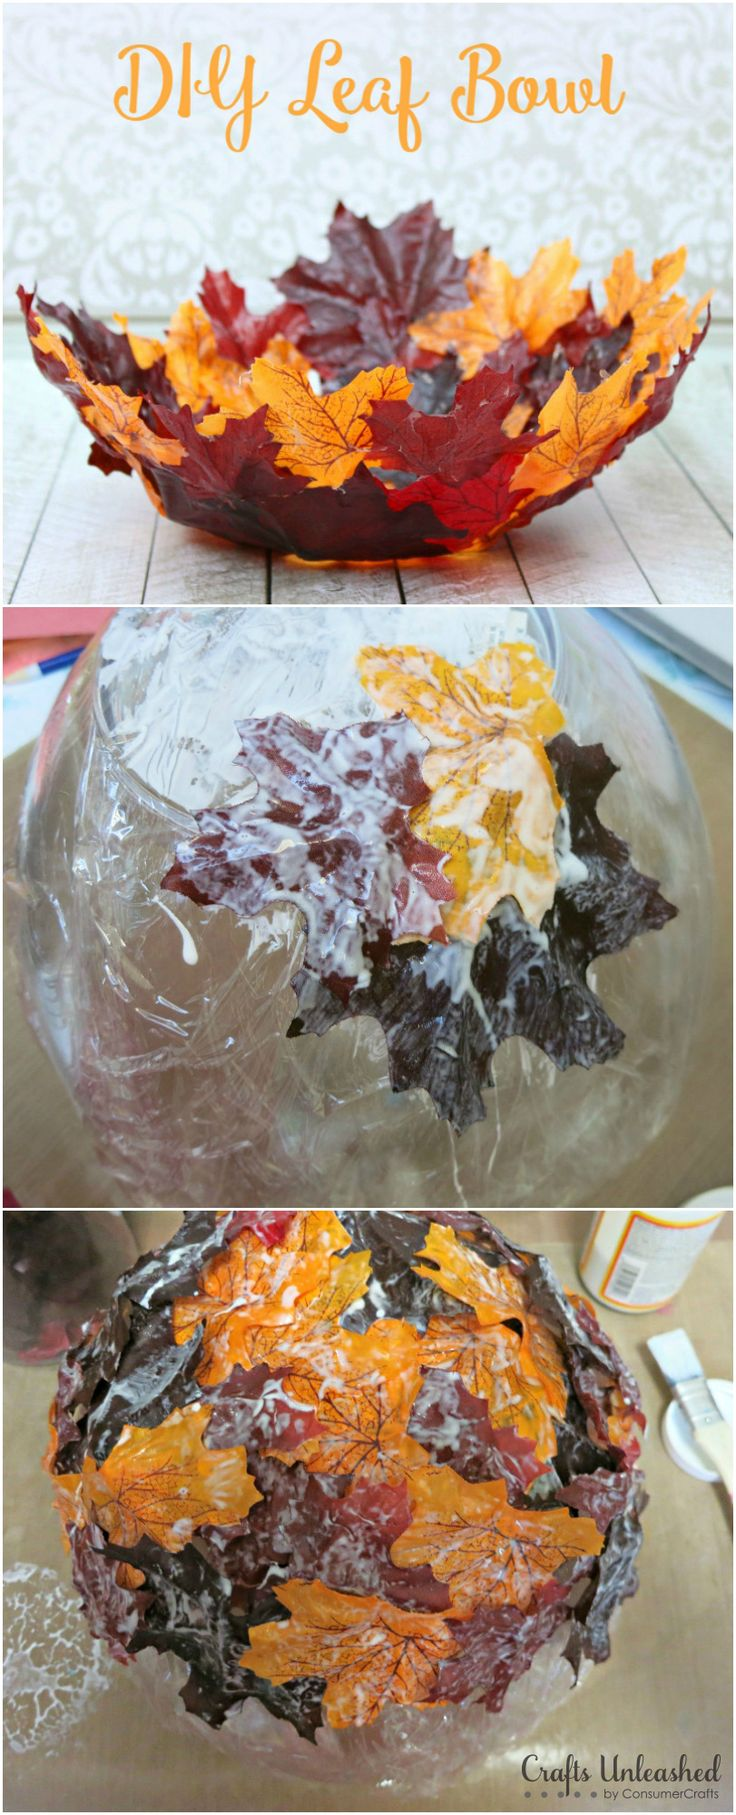 DIY Decorative Leaf Bowl for Fall: